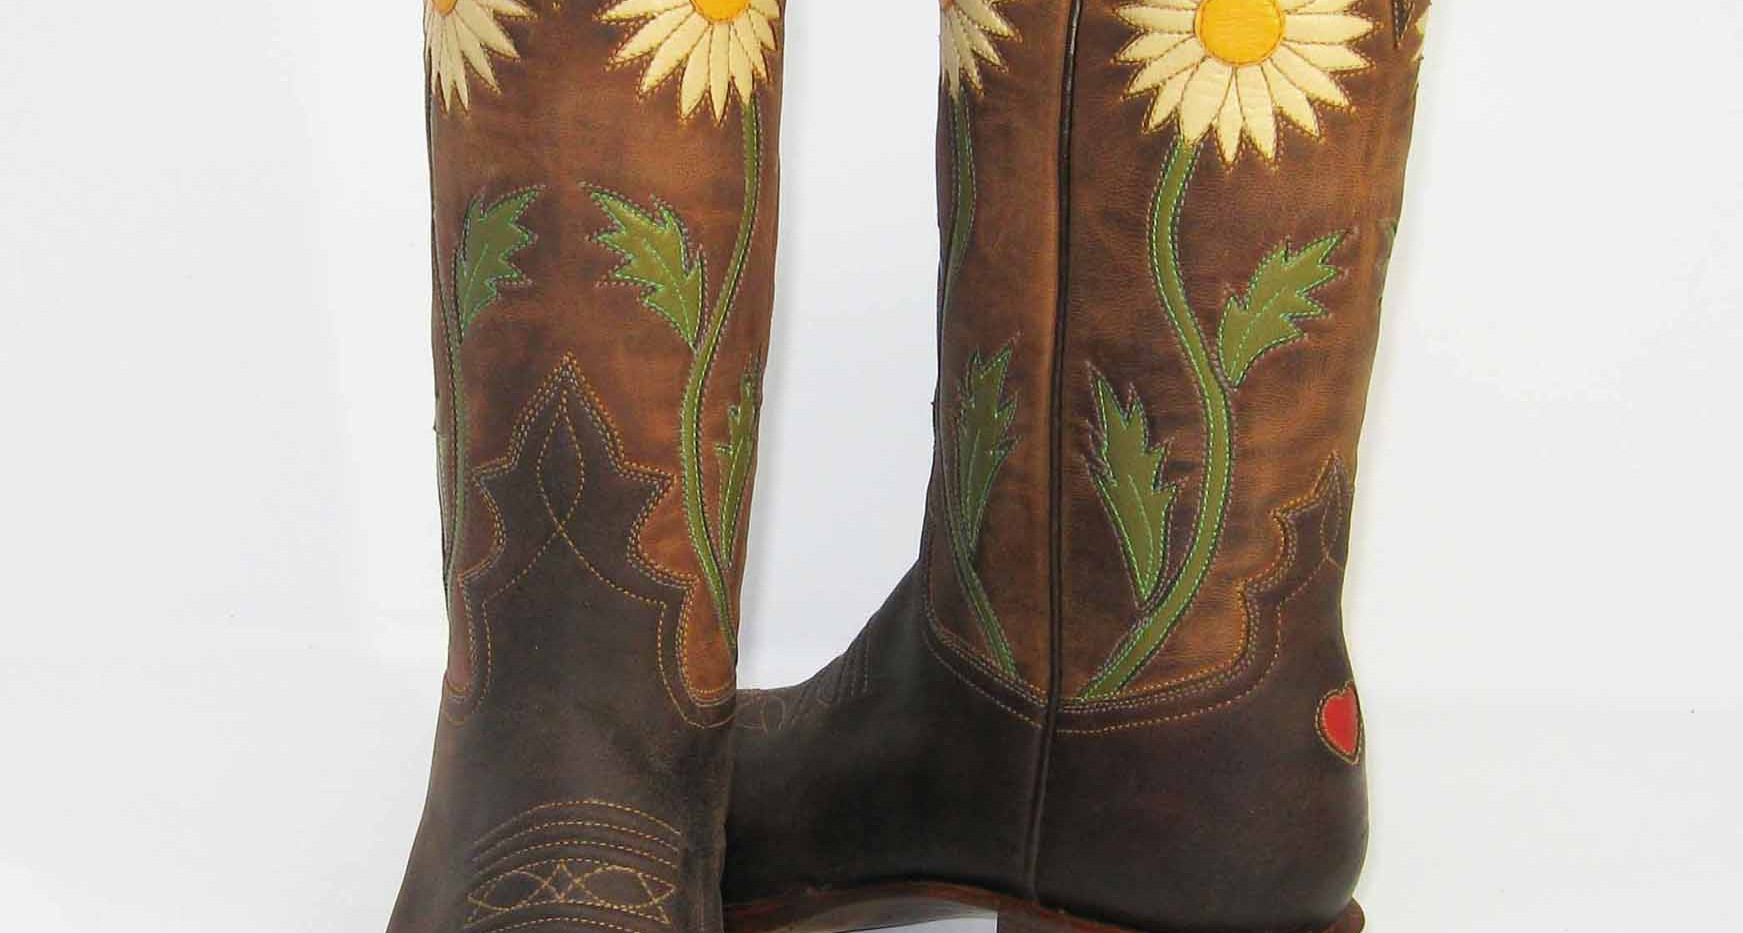 Daisy Inlays, goat vamps and tops.